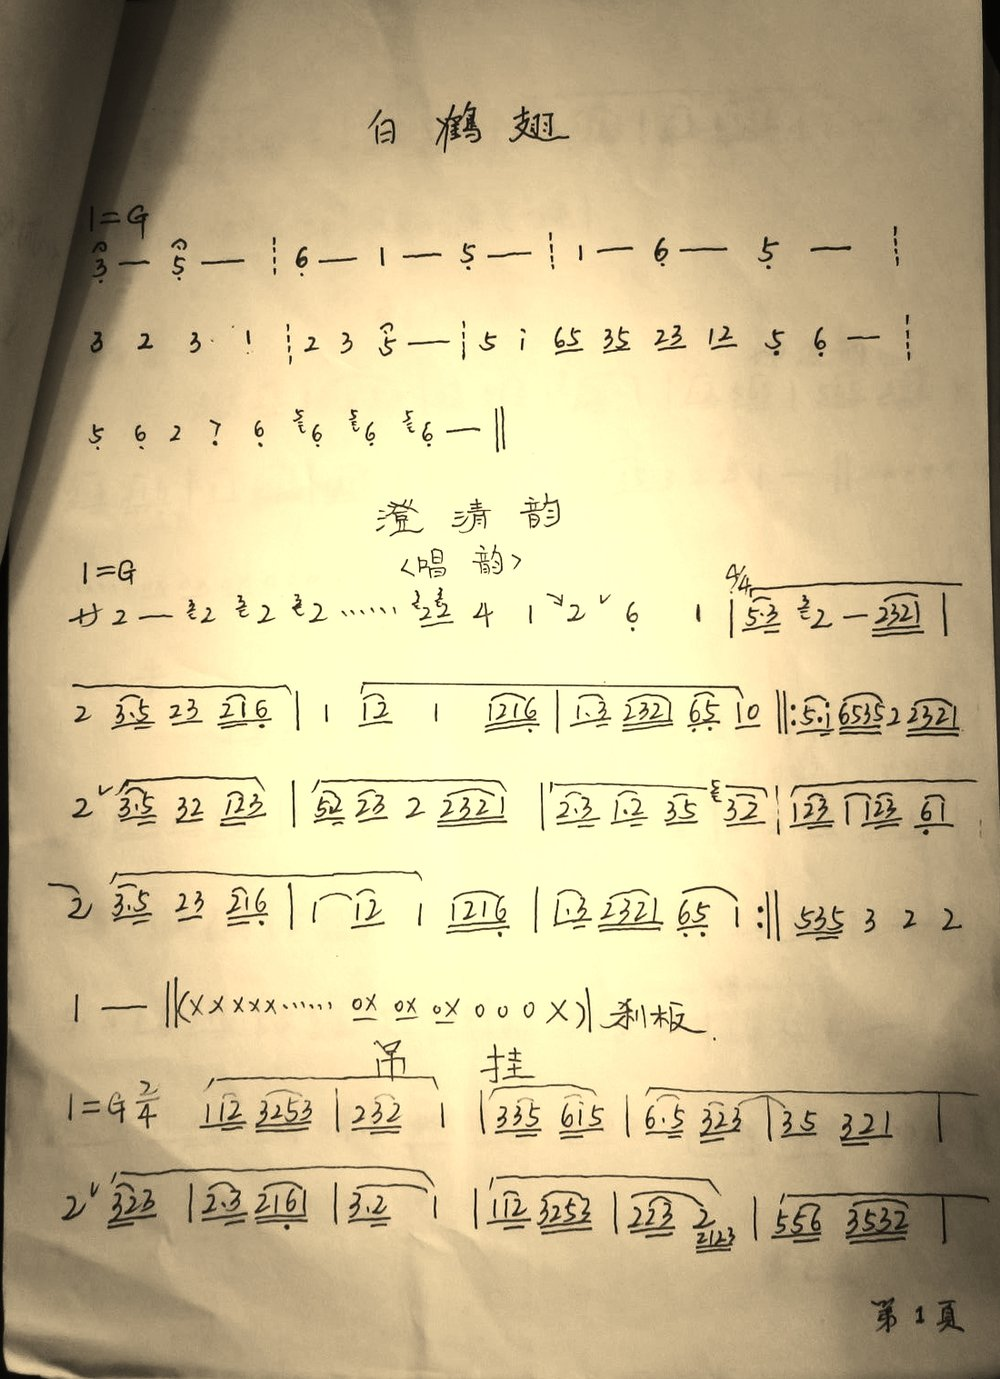 Tablature to the Morning and Evening Prayers based on master Wang's notes